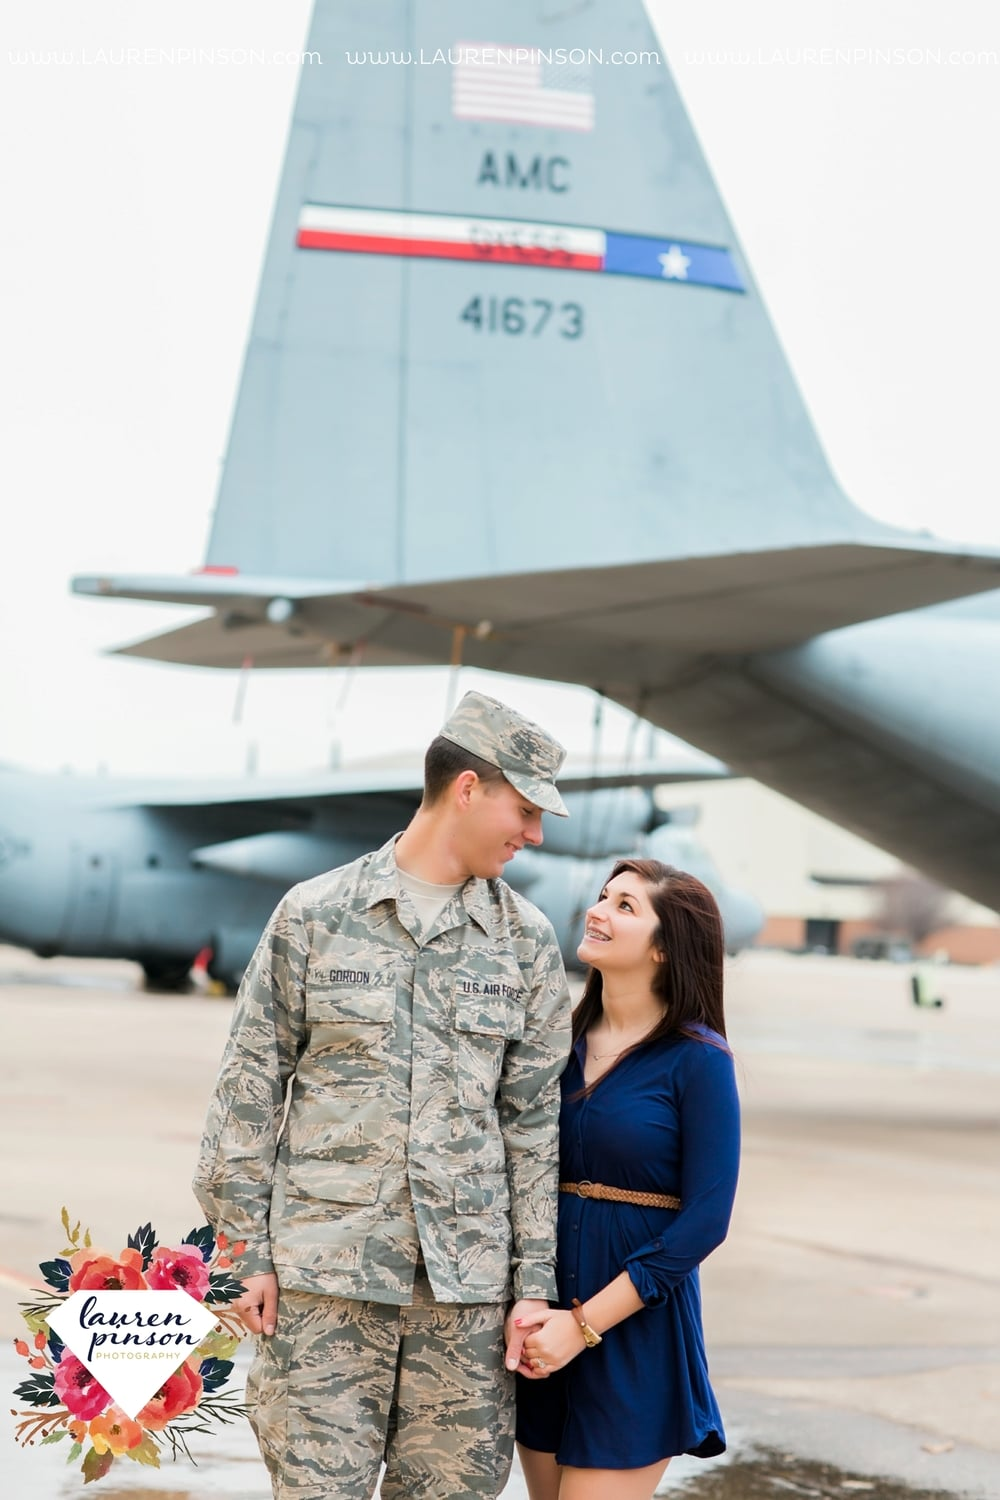 sheppard-afb-wichita-falls-engagement-session-airmen-in-uniform-abu-airplanes-bride-engagement-ring-texas-air-force-base_2002.jpg